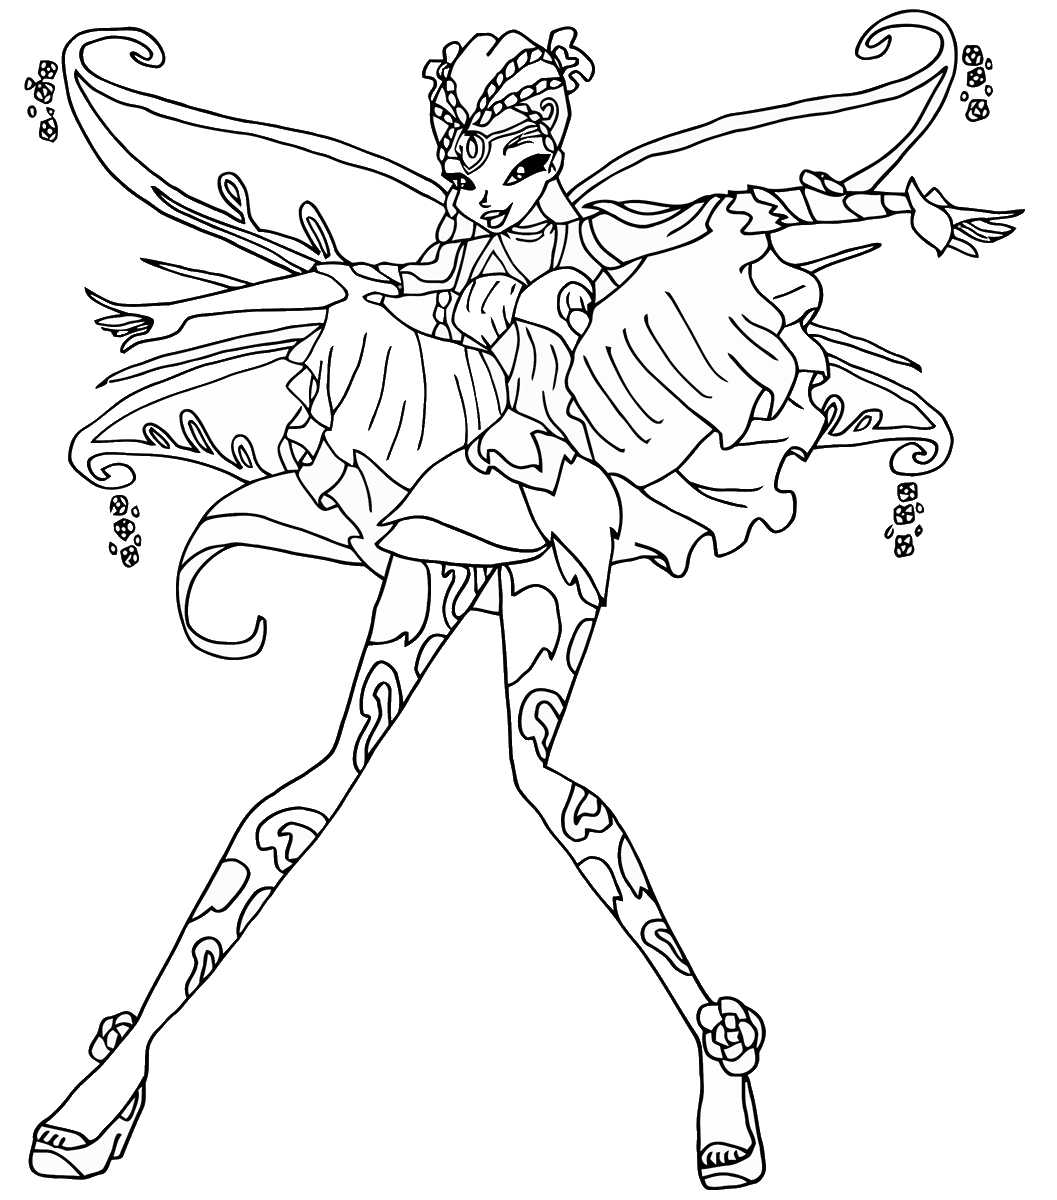 1057x1200 Best Of Lolirock Iris Coloring Pages Gallery Free Coloring Pages